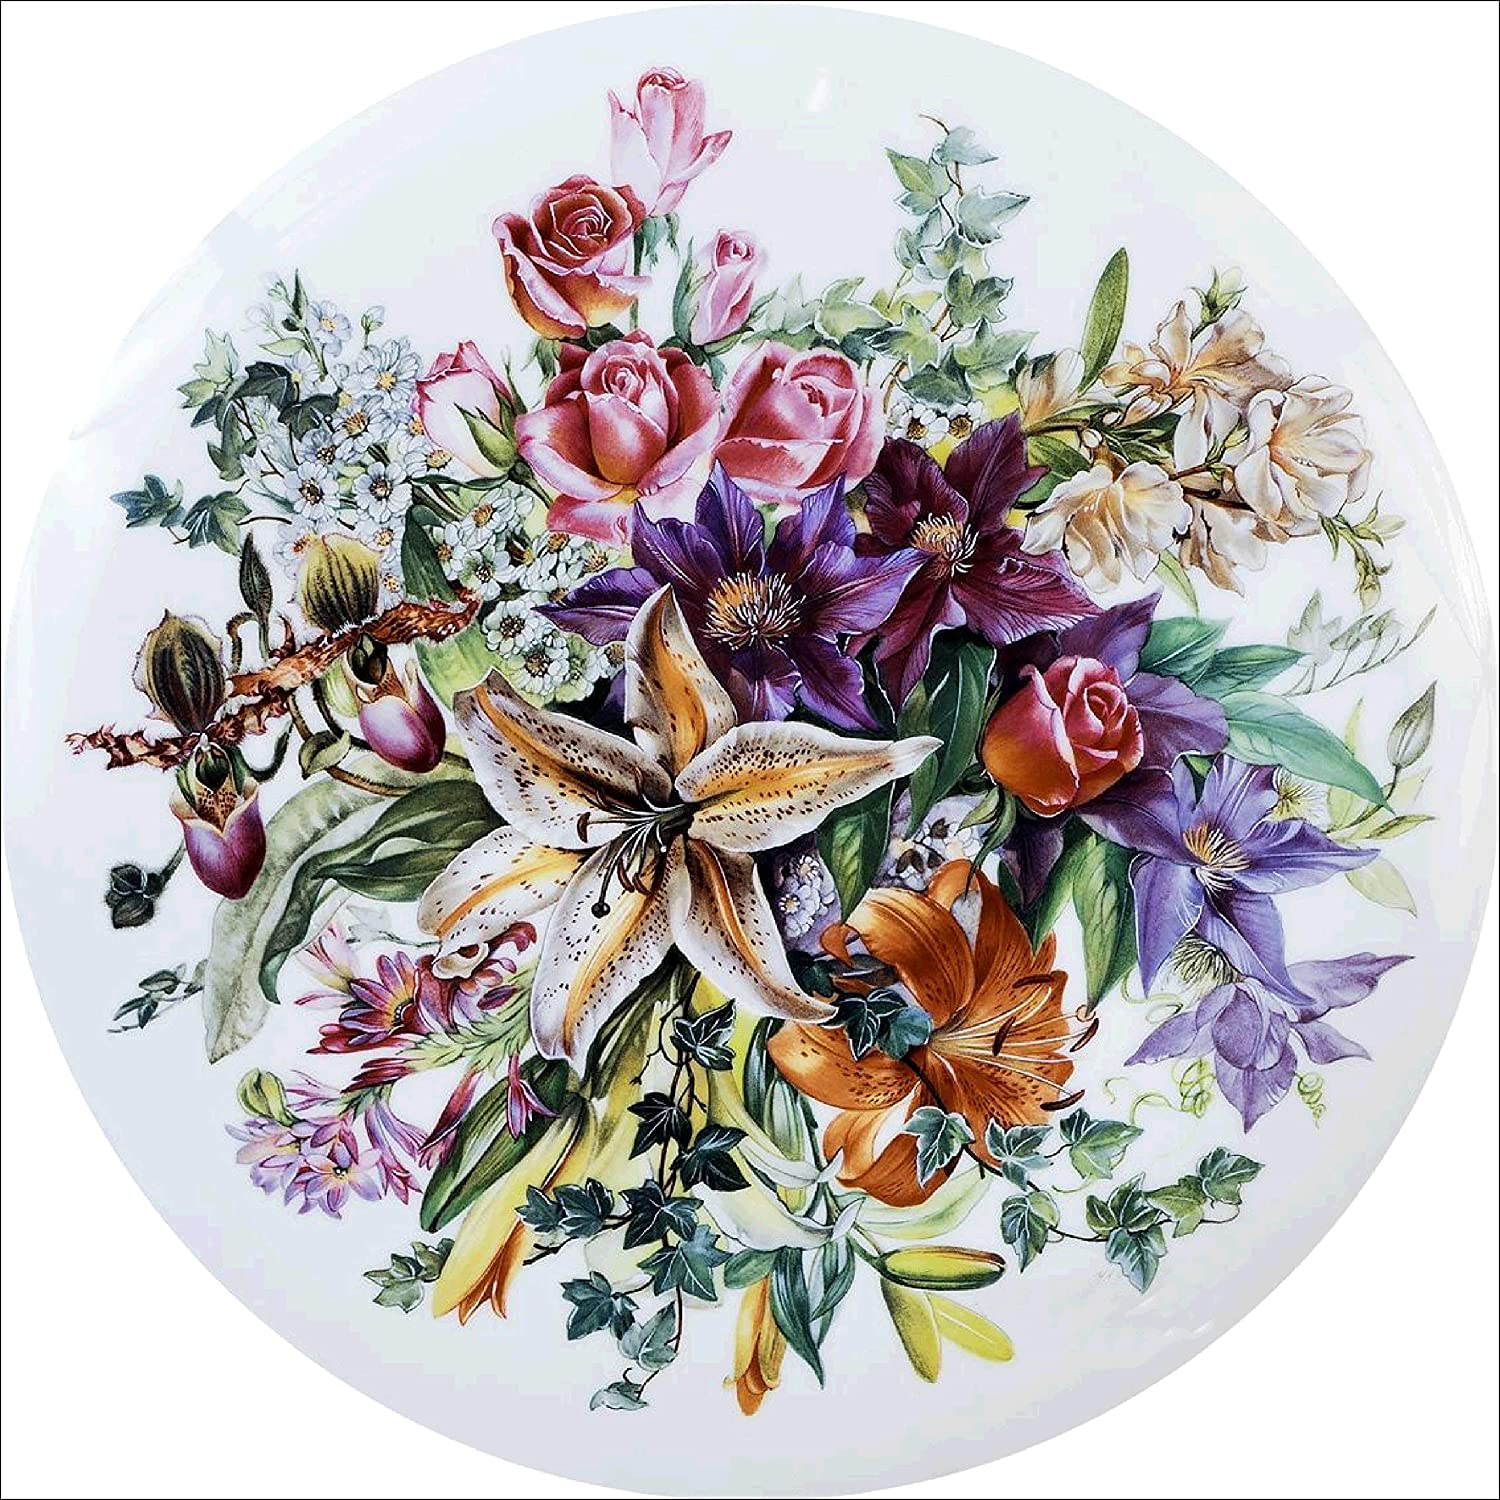 5D Diamond Painting Kit Flowers Full Drill Rhinestone Embroidery Cross Stitch Arts Crafts Diamond Paint by Numbers for Kids Adults Home Wall Decor 11.8/×11.8inch